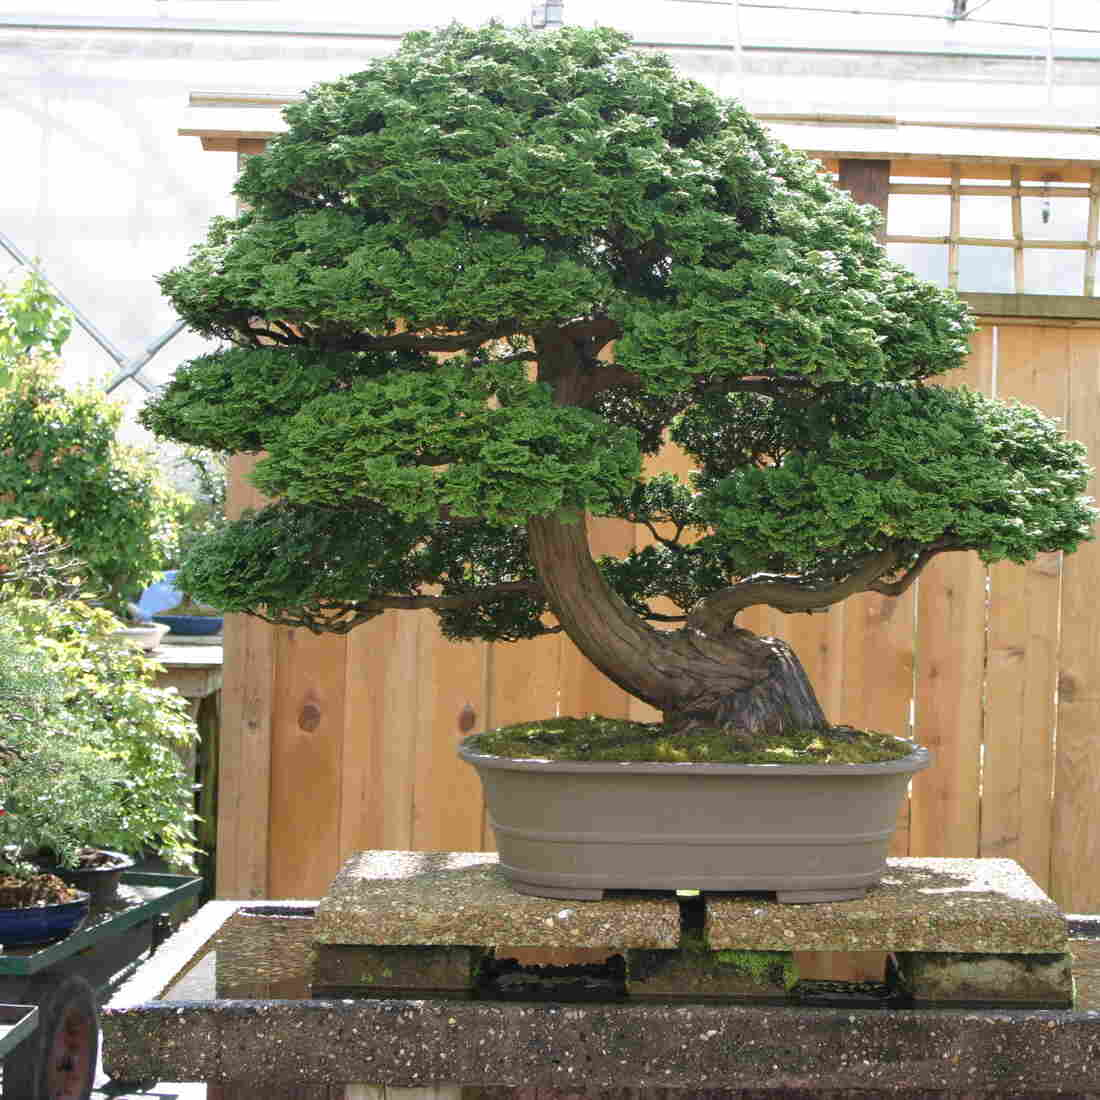 """A Hinoki cypress at Brussel Martin's bonsai nursery in Mississippi. He has nurtured it for 40 years, which is half its life. """"I turned down $40,000 for it a year ago,"""" Martin says. """"It is worth twice that. I call it Big Bertha."""""""